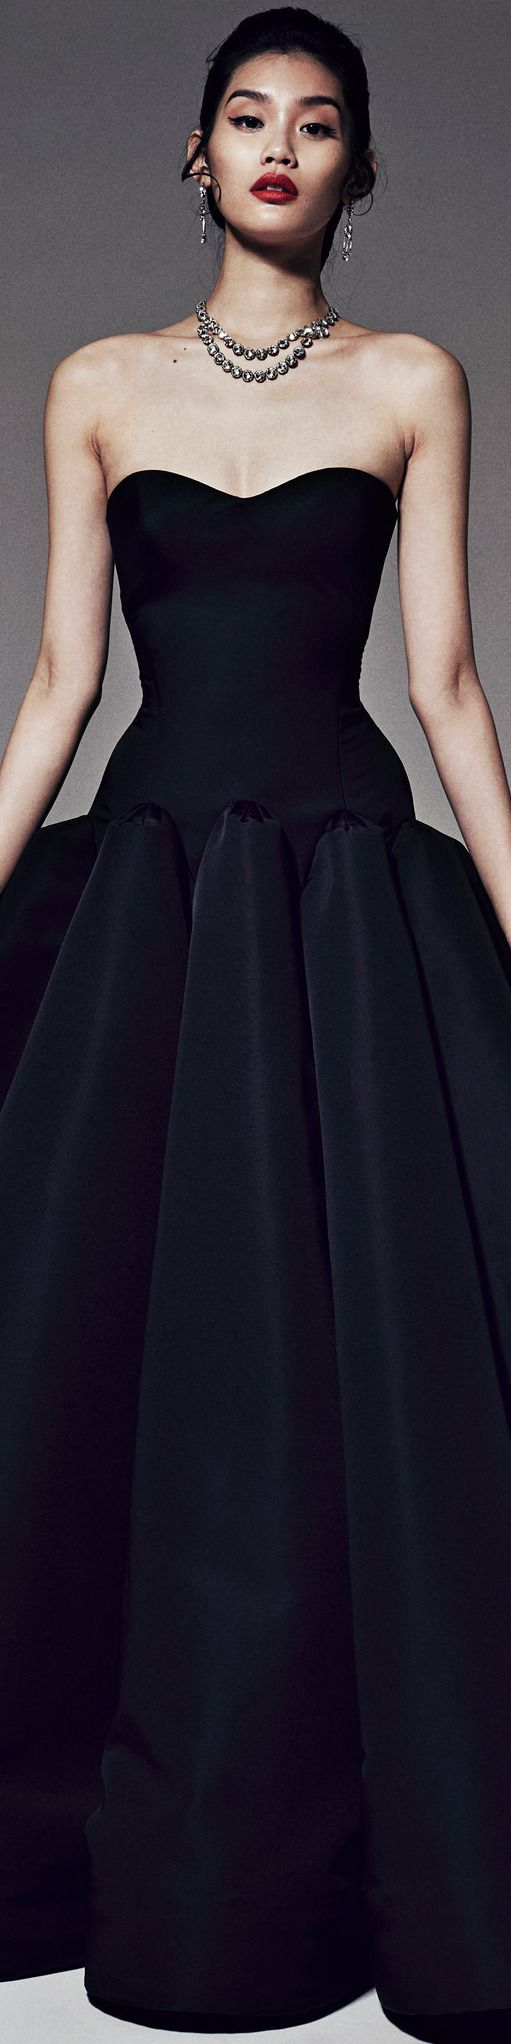 Golden Globes Dress: Worn by Sofia Vagara - Zac Posen Pre-Fall 2014